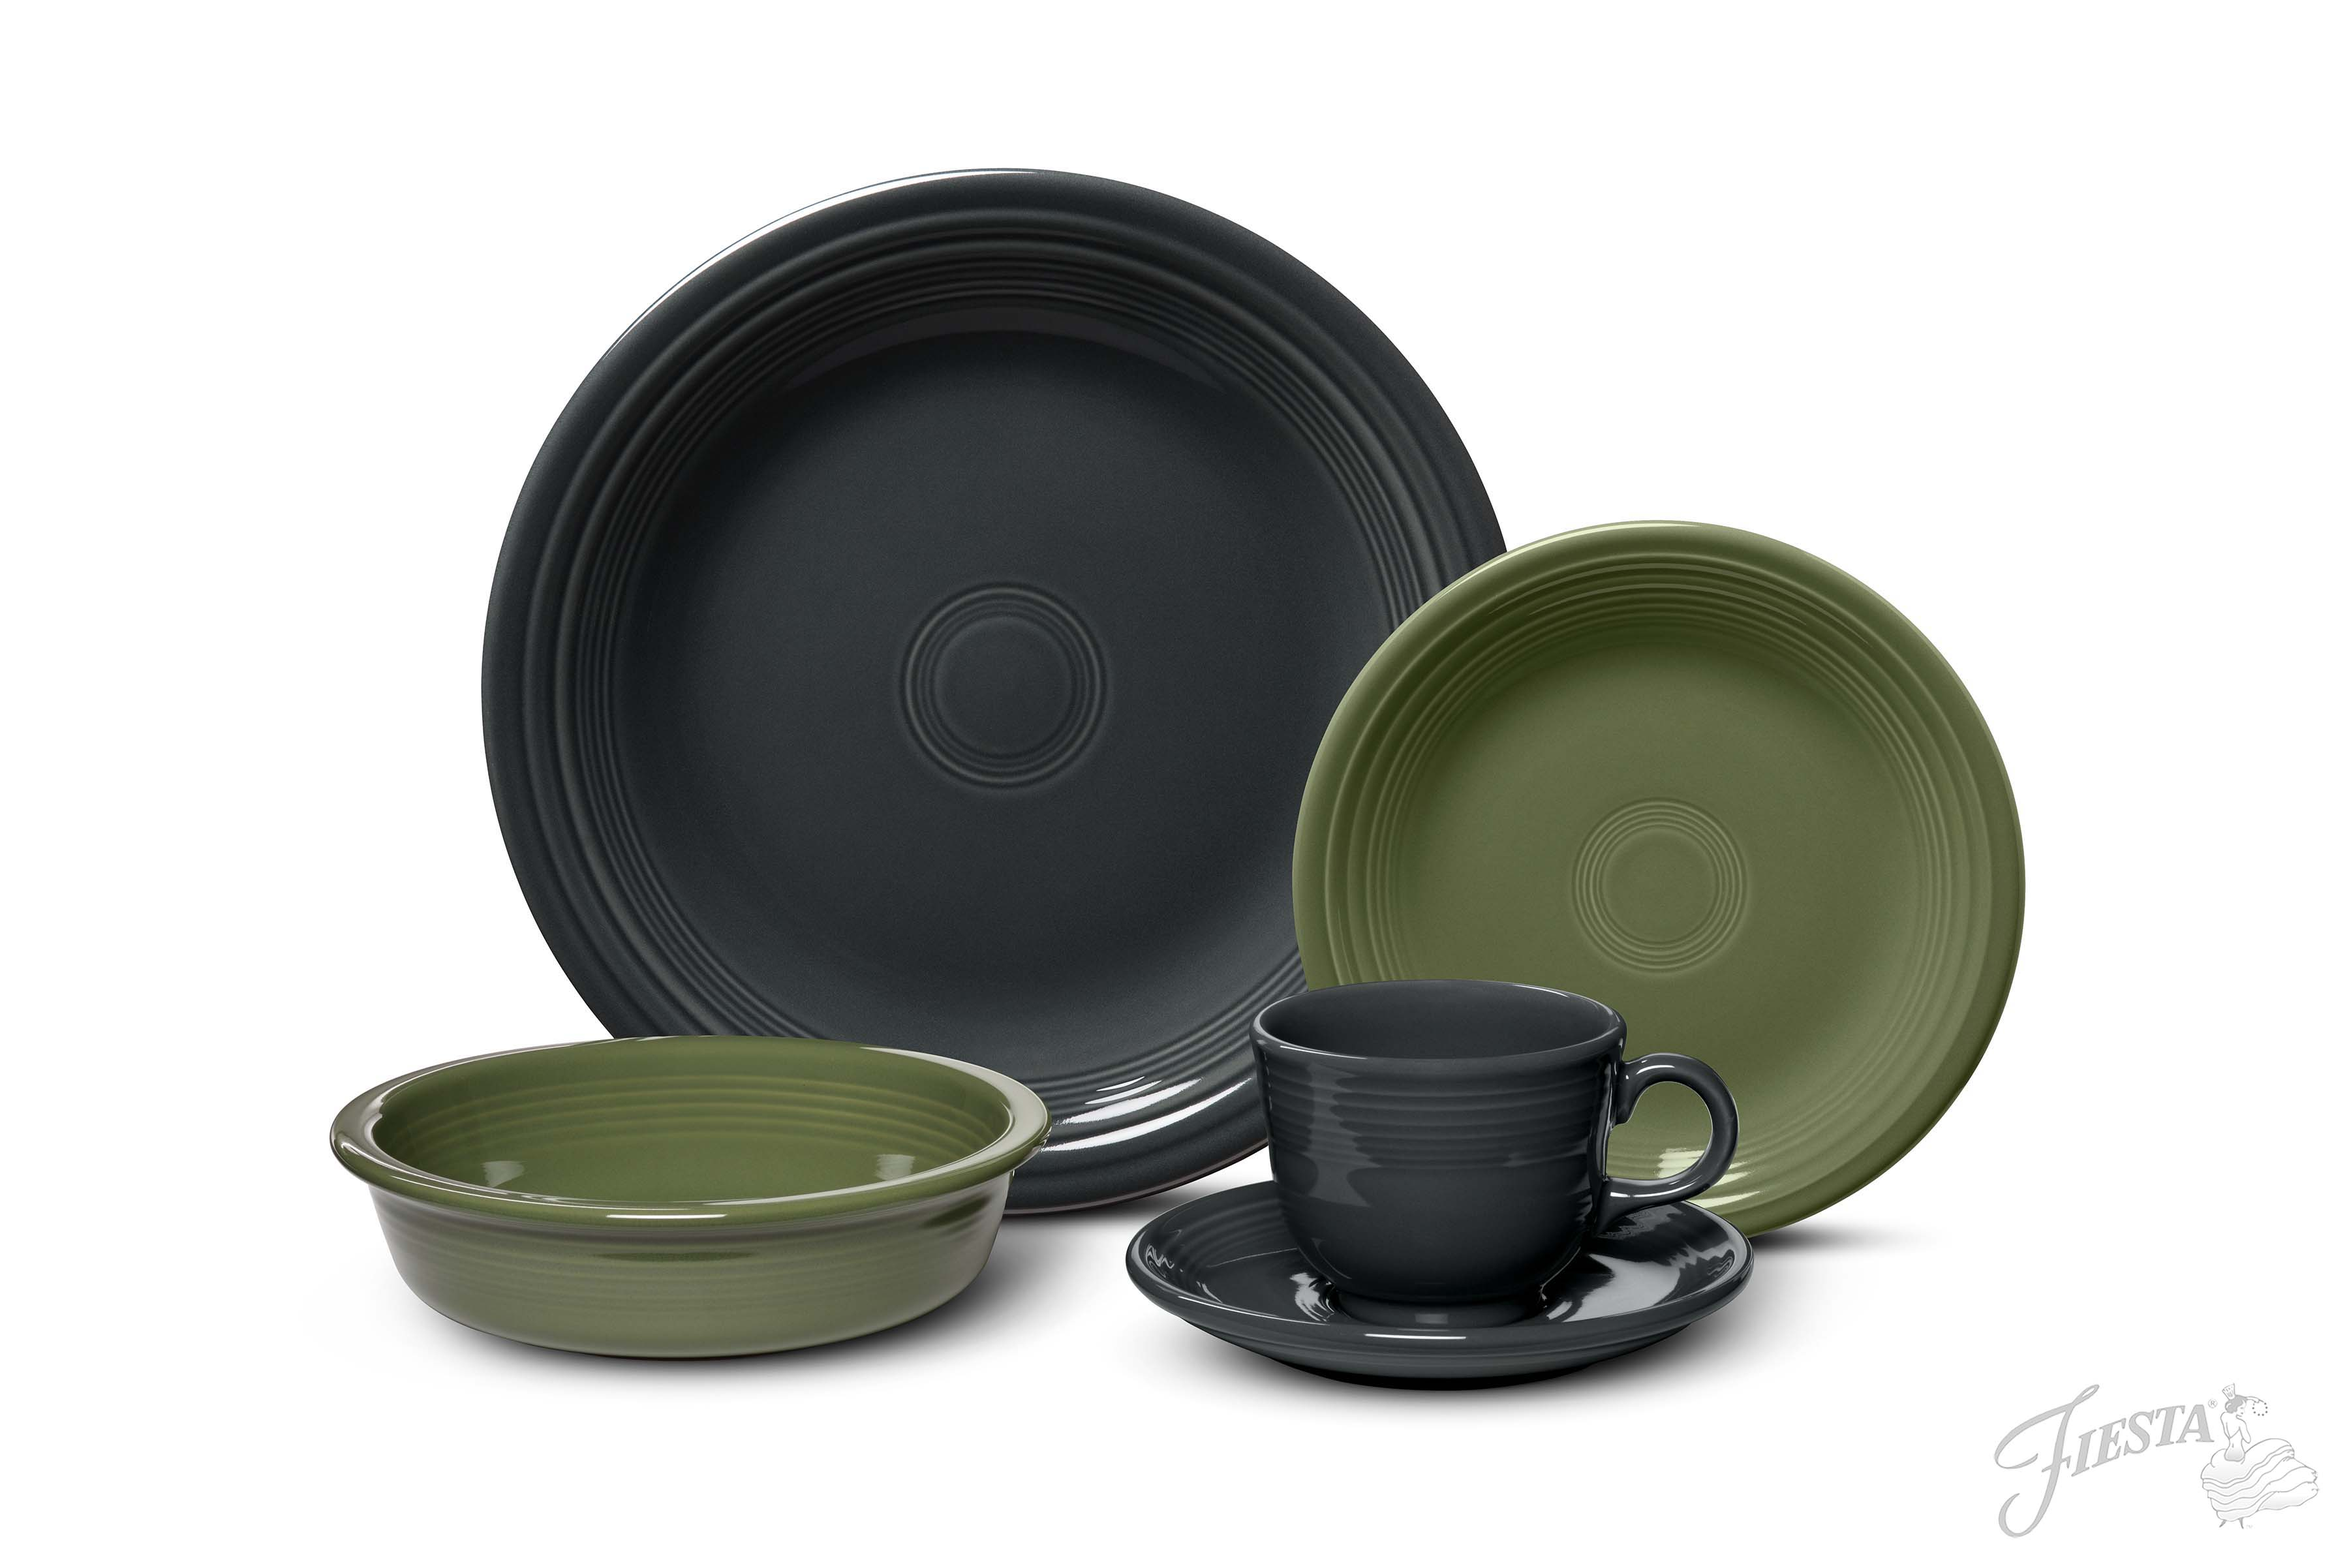 Fiesta Dinnerwares New Color Introduction Is Twice As Nice  Kitchenware News  Housewares